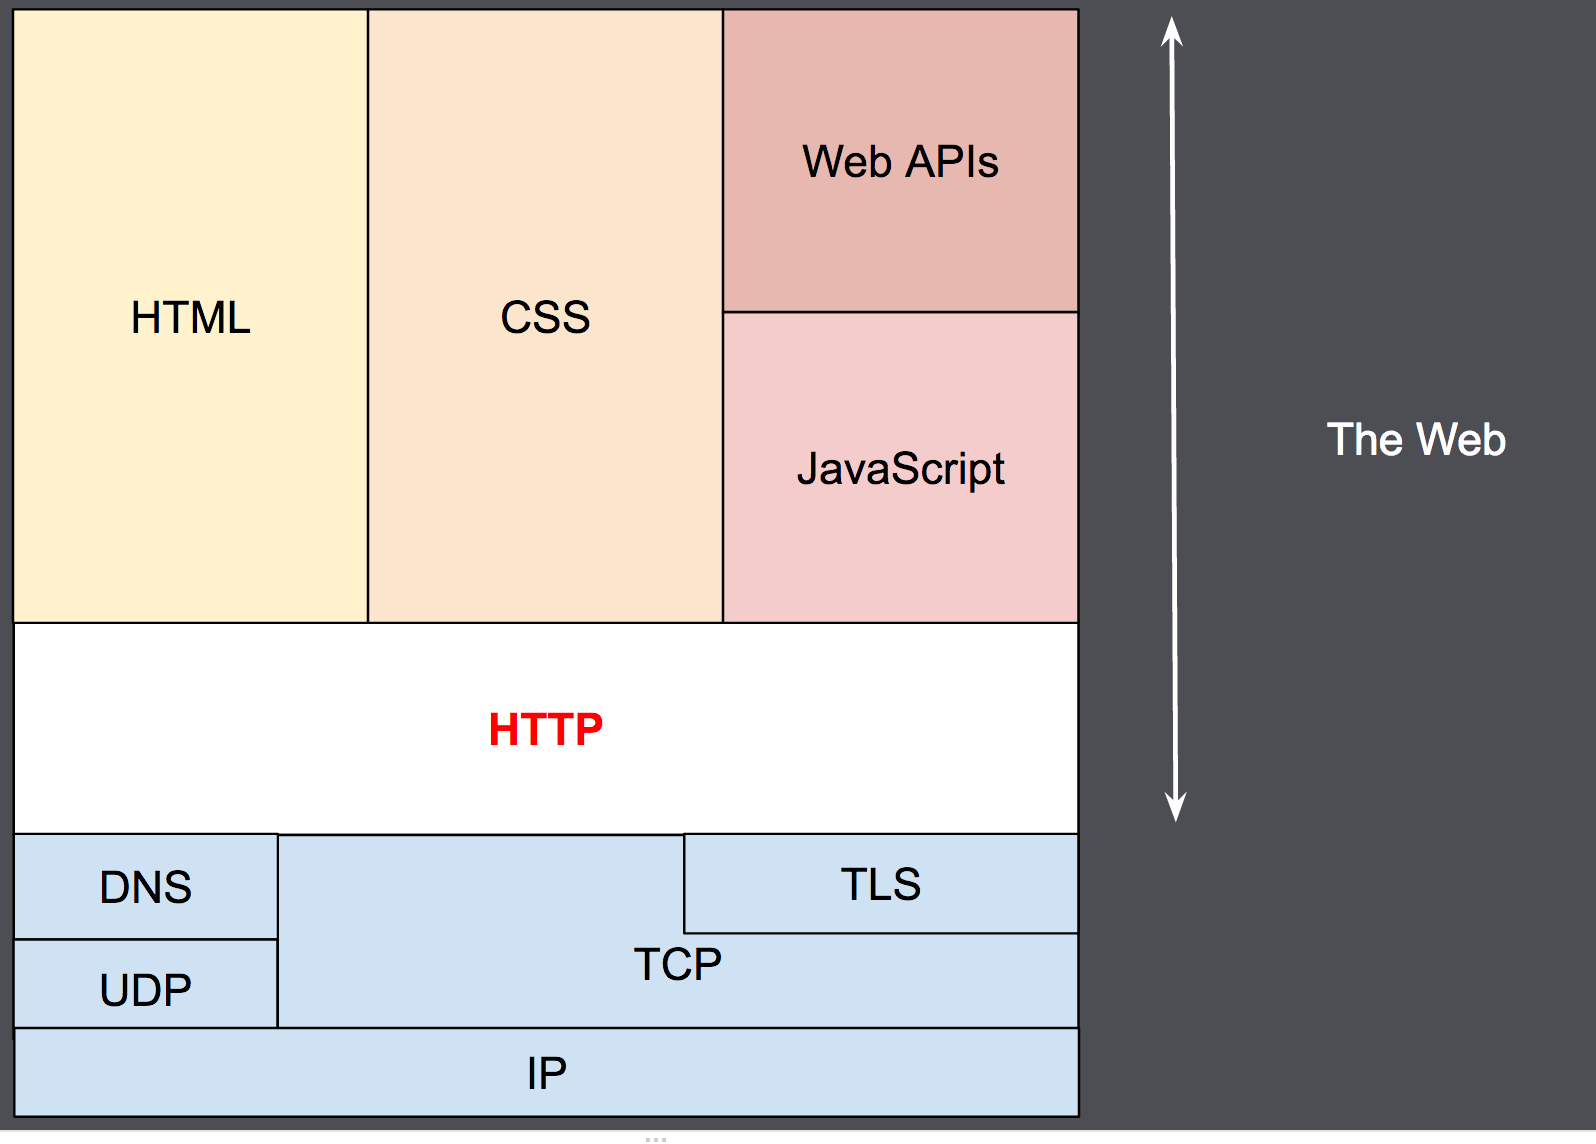 HTTP as an application layer protocol, on top of TCP (transport layer) and IP (network layer) and below the presentation layer.